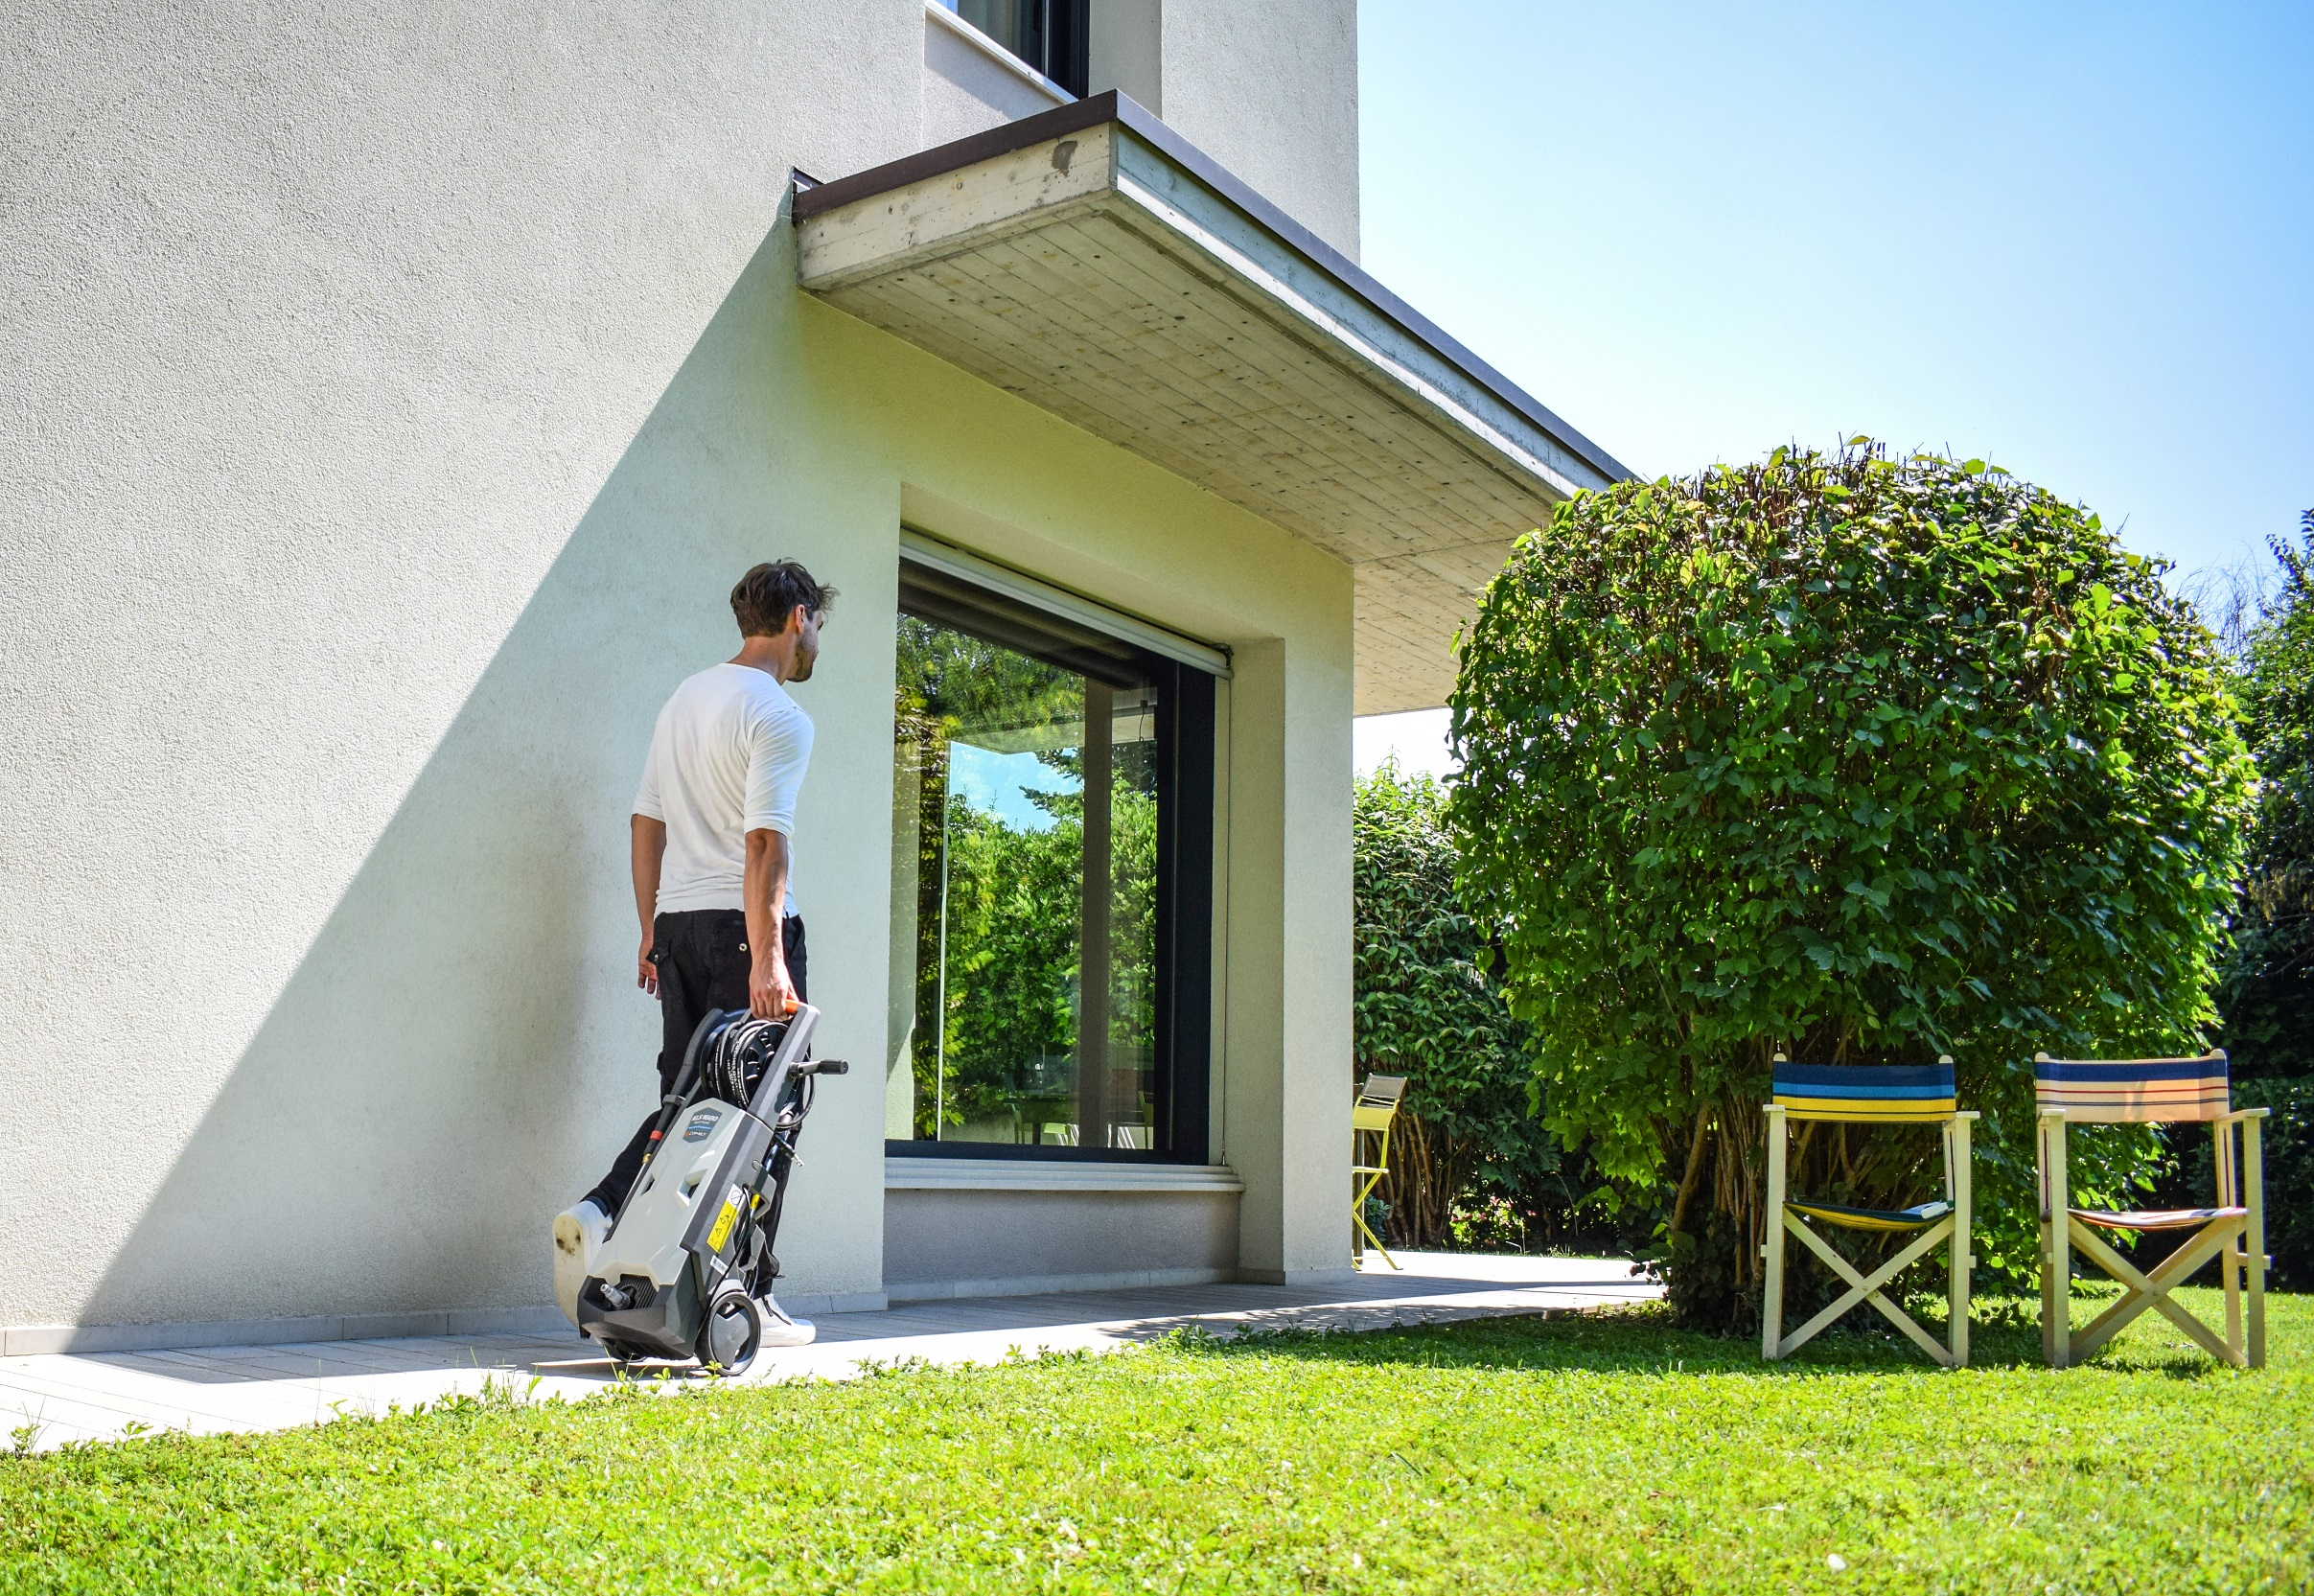 QUICK AND EASY SPRING CLEANING WITH THE PRESSURE WASHER